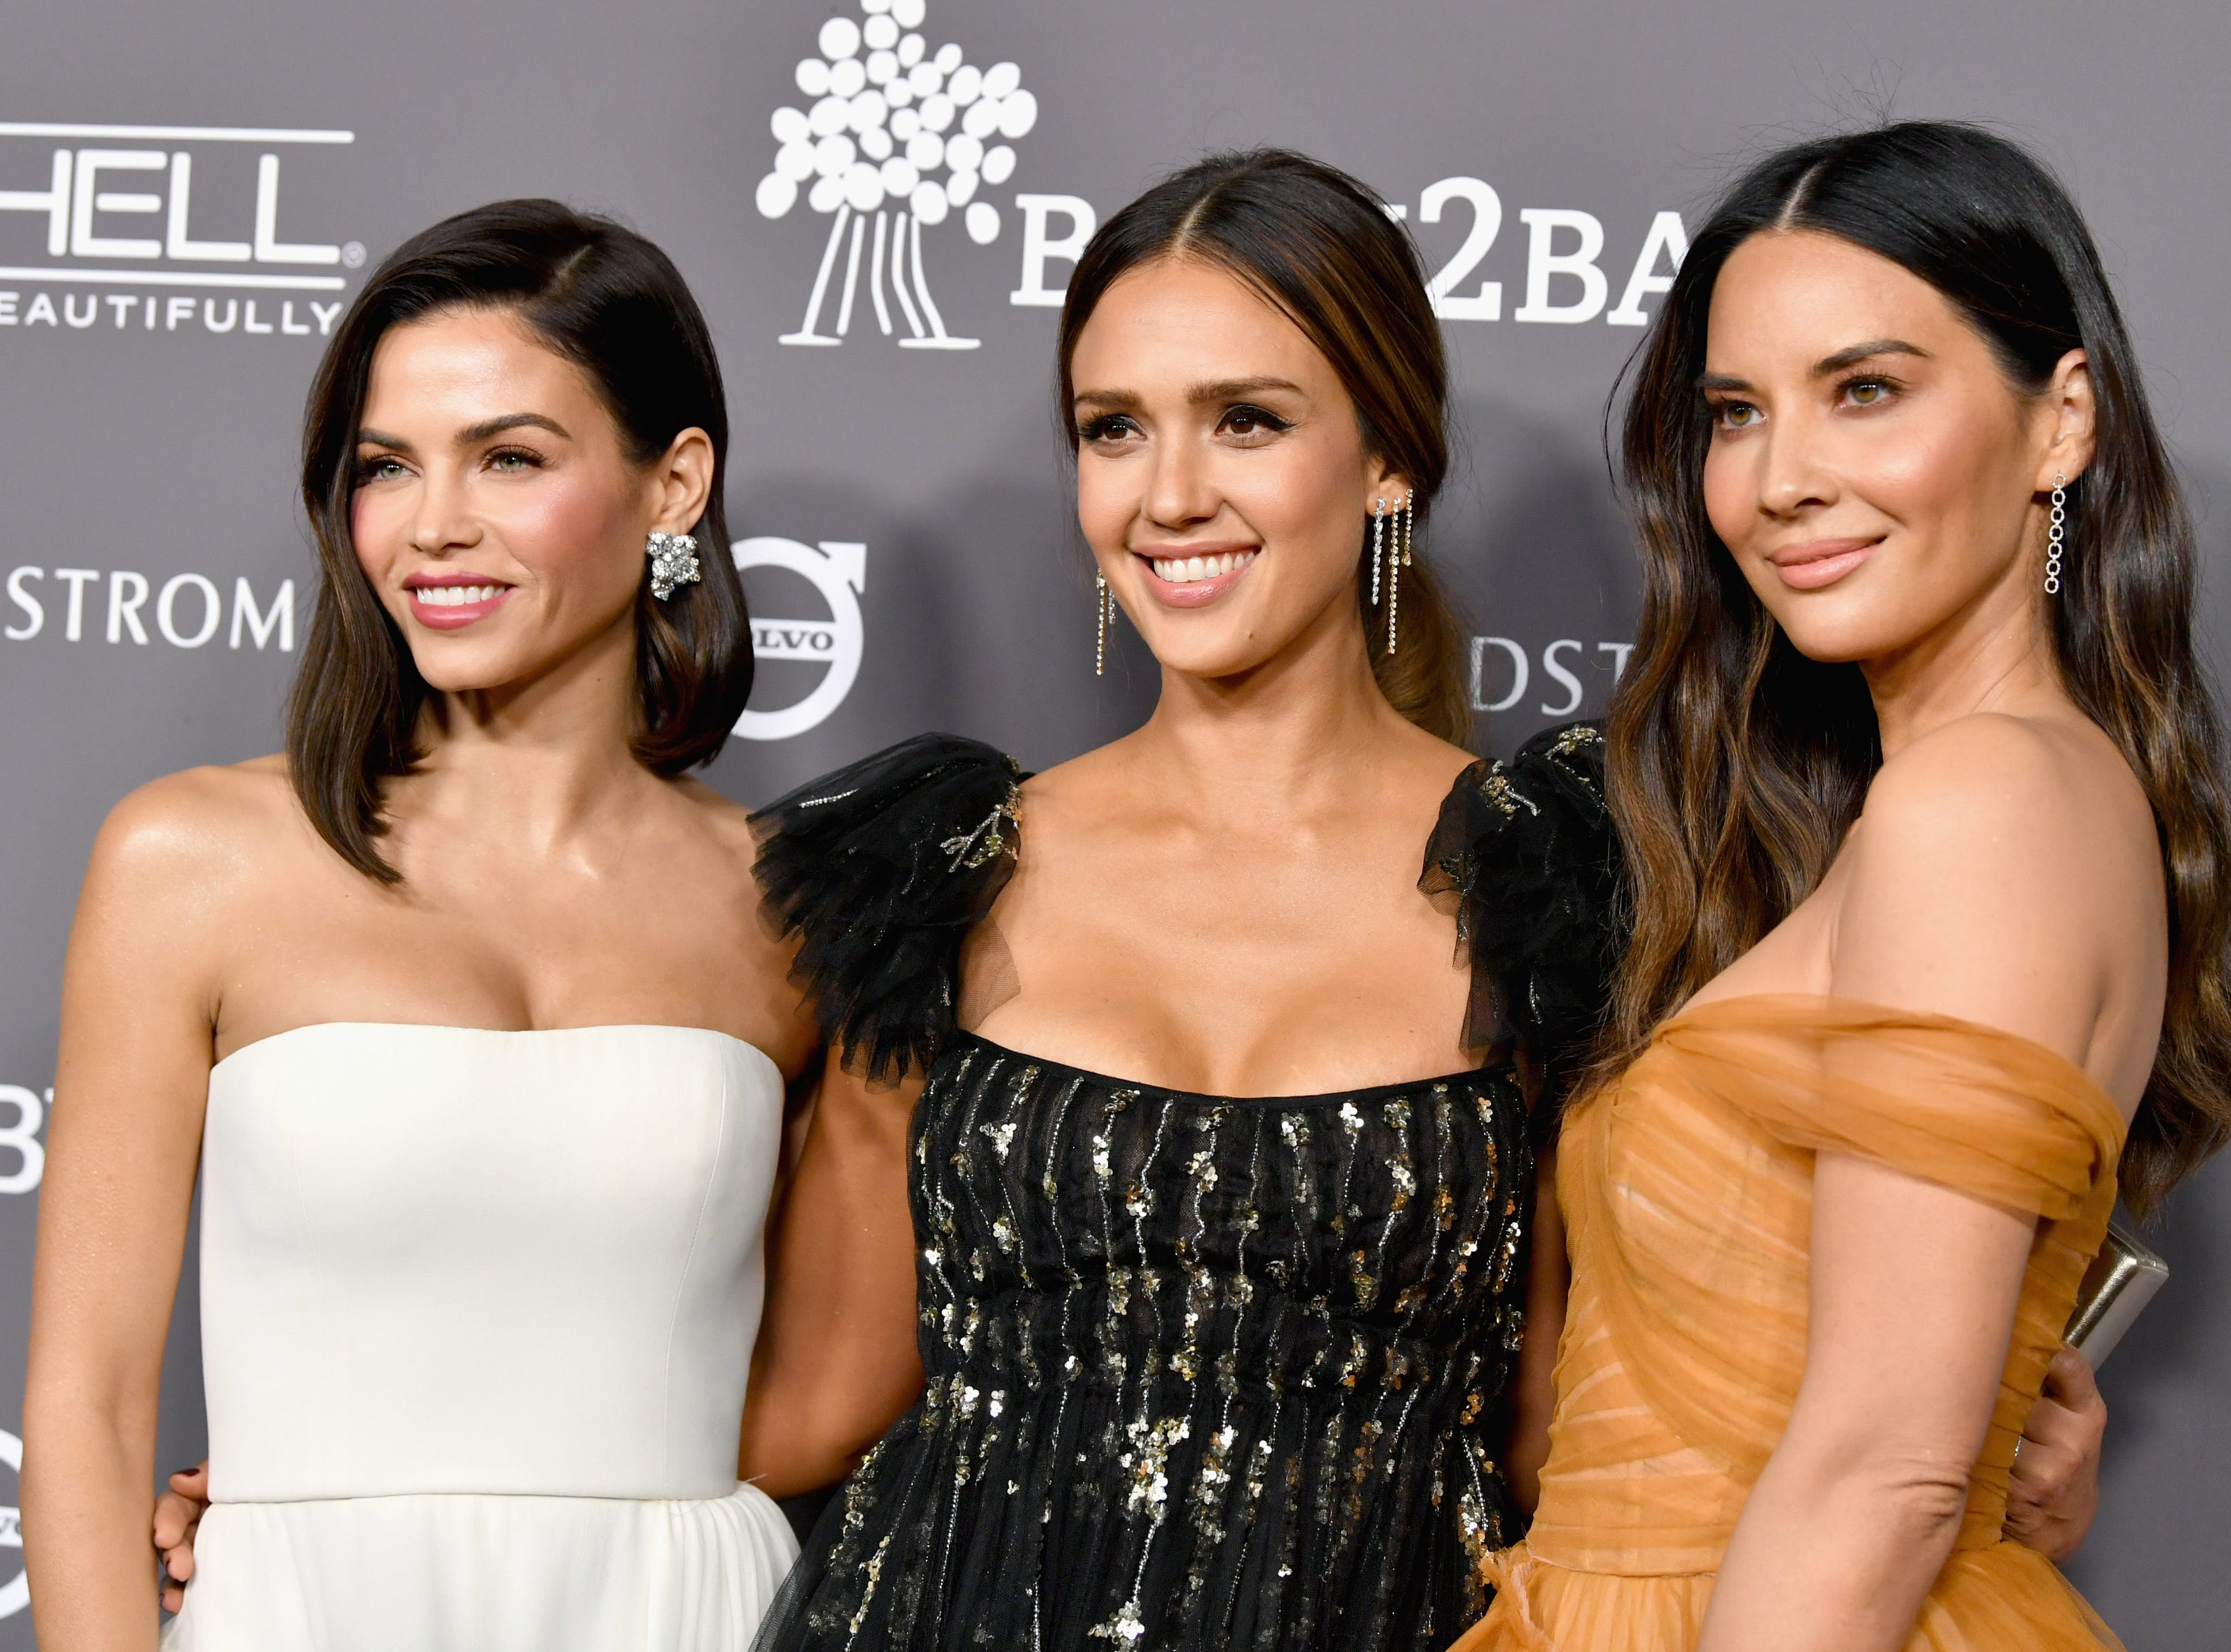 CULVER CITY, CA - NOVEMBER 10:  (L-R) Jenna Dewan, Jessica Alba, and Olivia Munn attend the 2018 Baby2Baby Gala Presented by Paul Mitchell at 3LABS on November 10, 2018 in Culver City, California.  (Photo by Emma McIntyre/Getty Images) ORG XMIT: 775238508 ORIG FILE ID: 1060105178